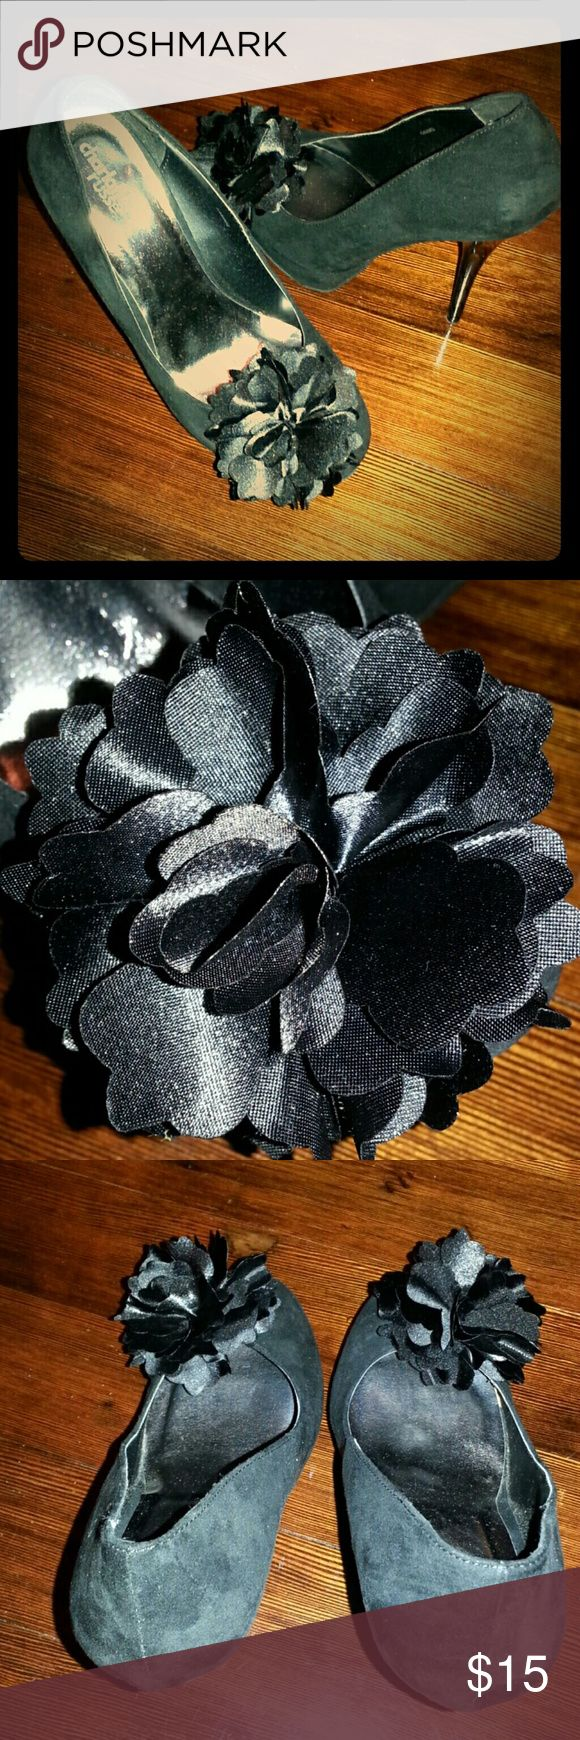 """Cute Black Heels w/ Flower Embellishment Cute black heels! Heel is 5 to 5 1/2"""" high. Only worn a couple times. Faux saude and heels are glossy plastic. Flower embellishments on both. See close up. Charlotte Russe Shoes Heels"""